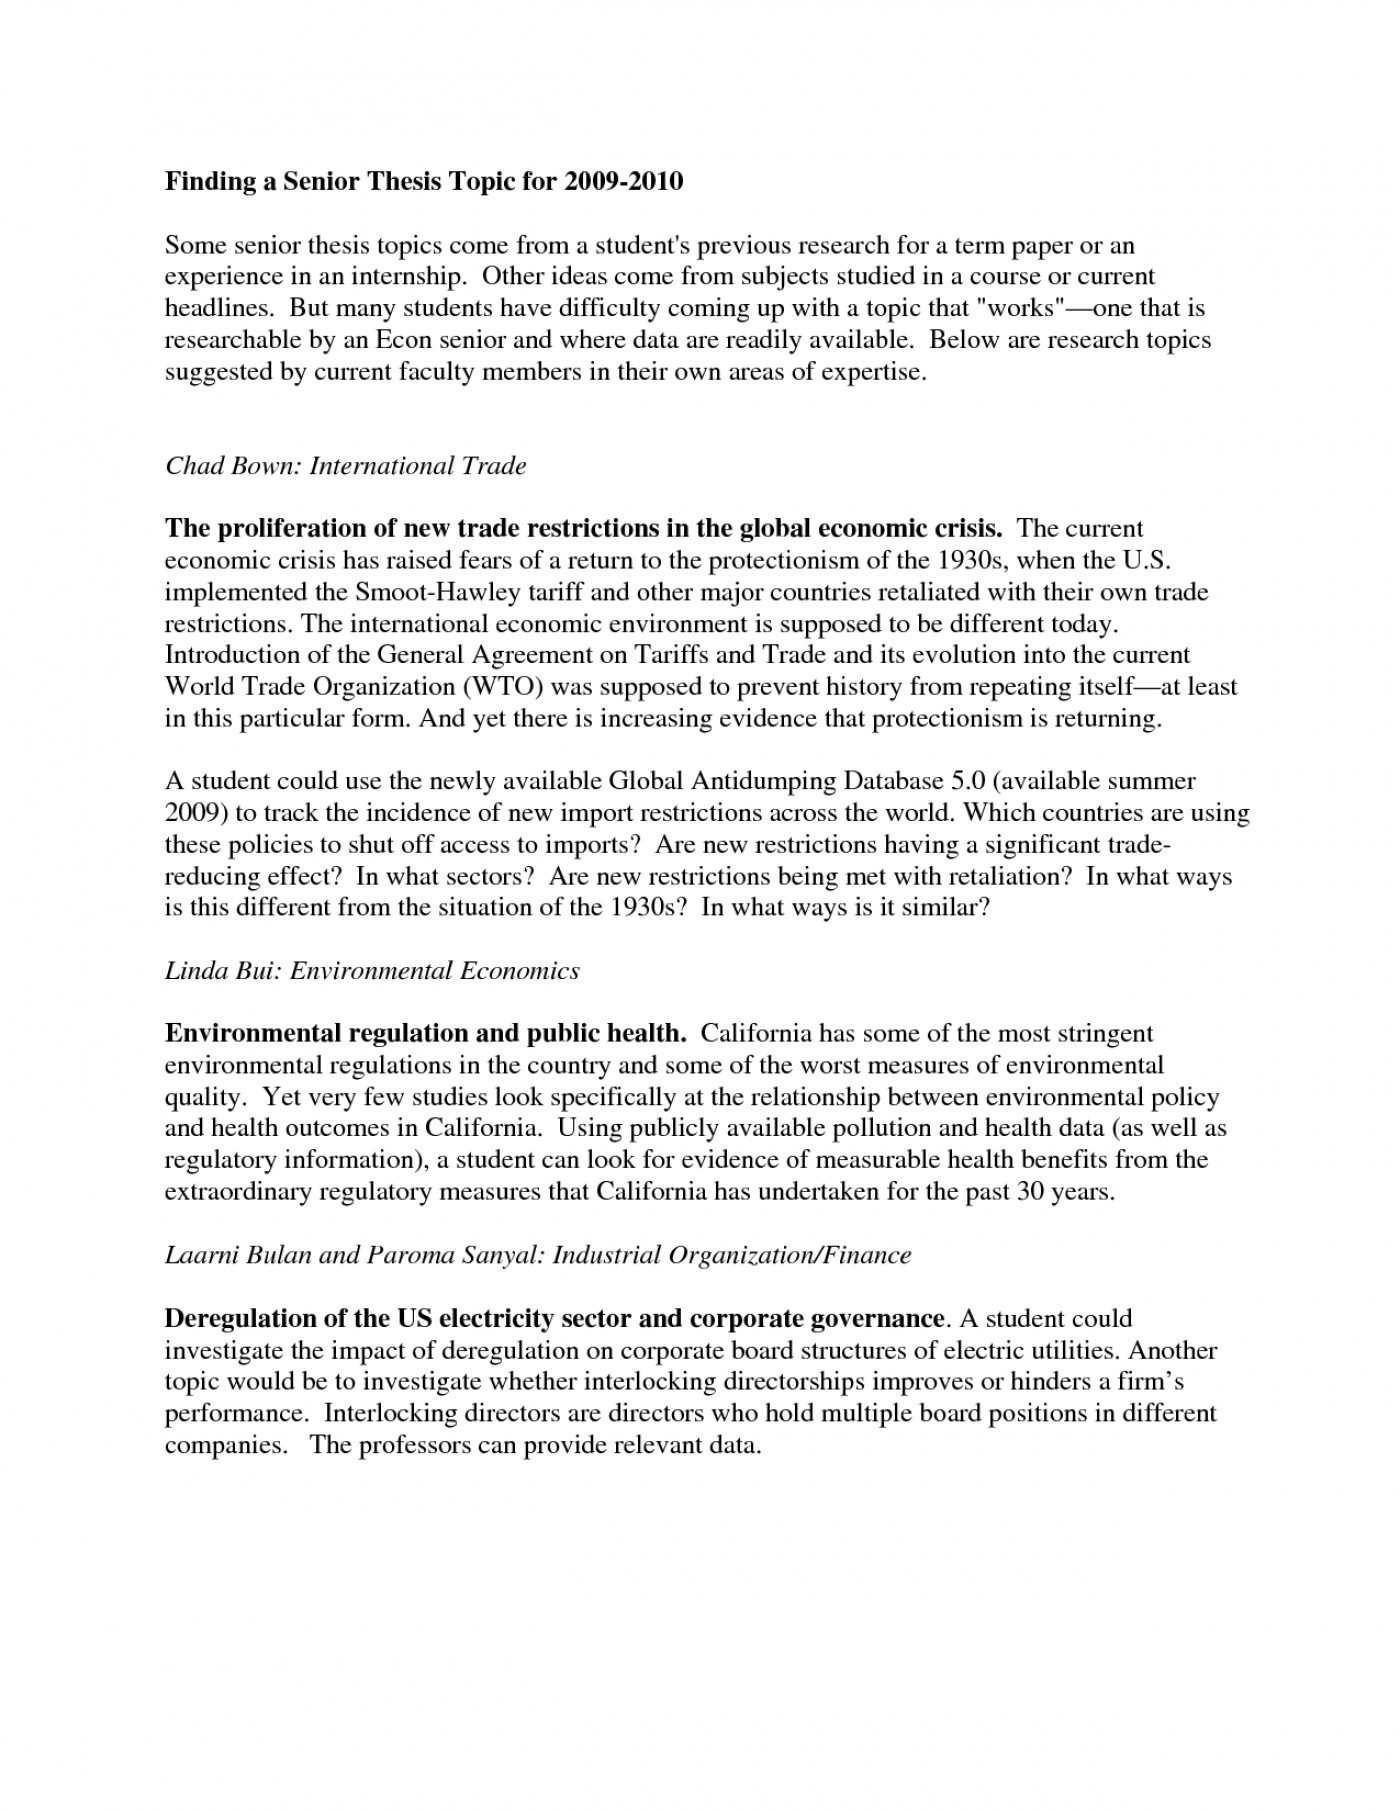 007 Interesting Topics For Research Paper High School Frightening A Students Argumentative 1400